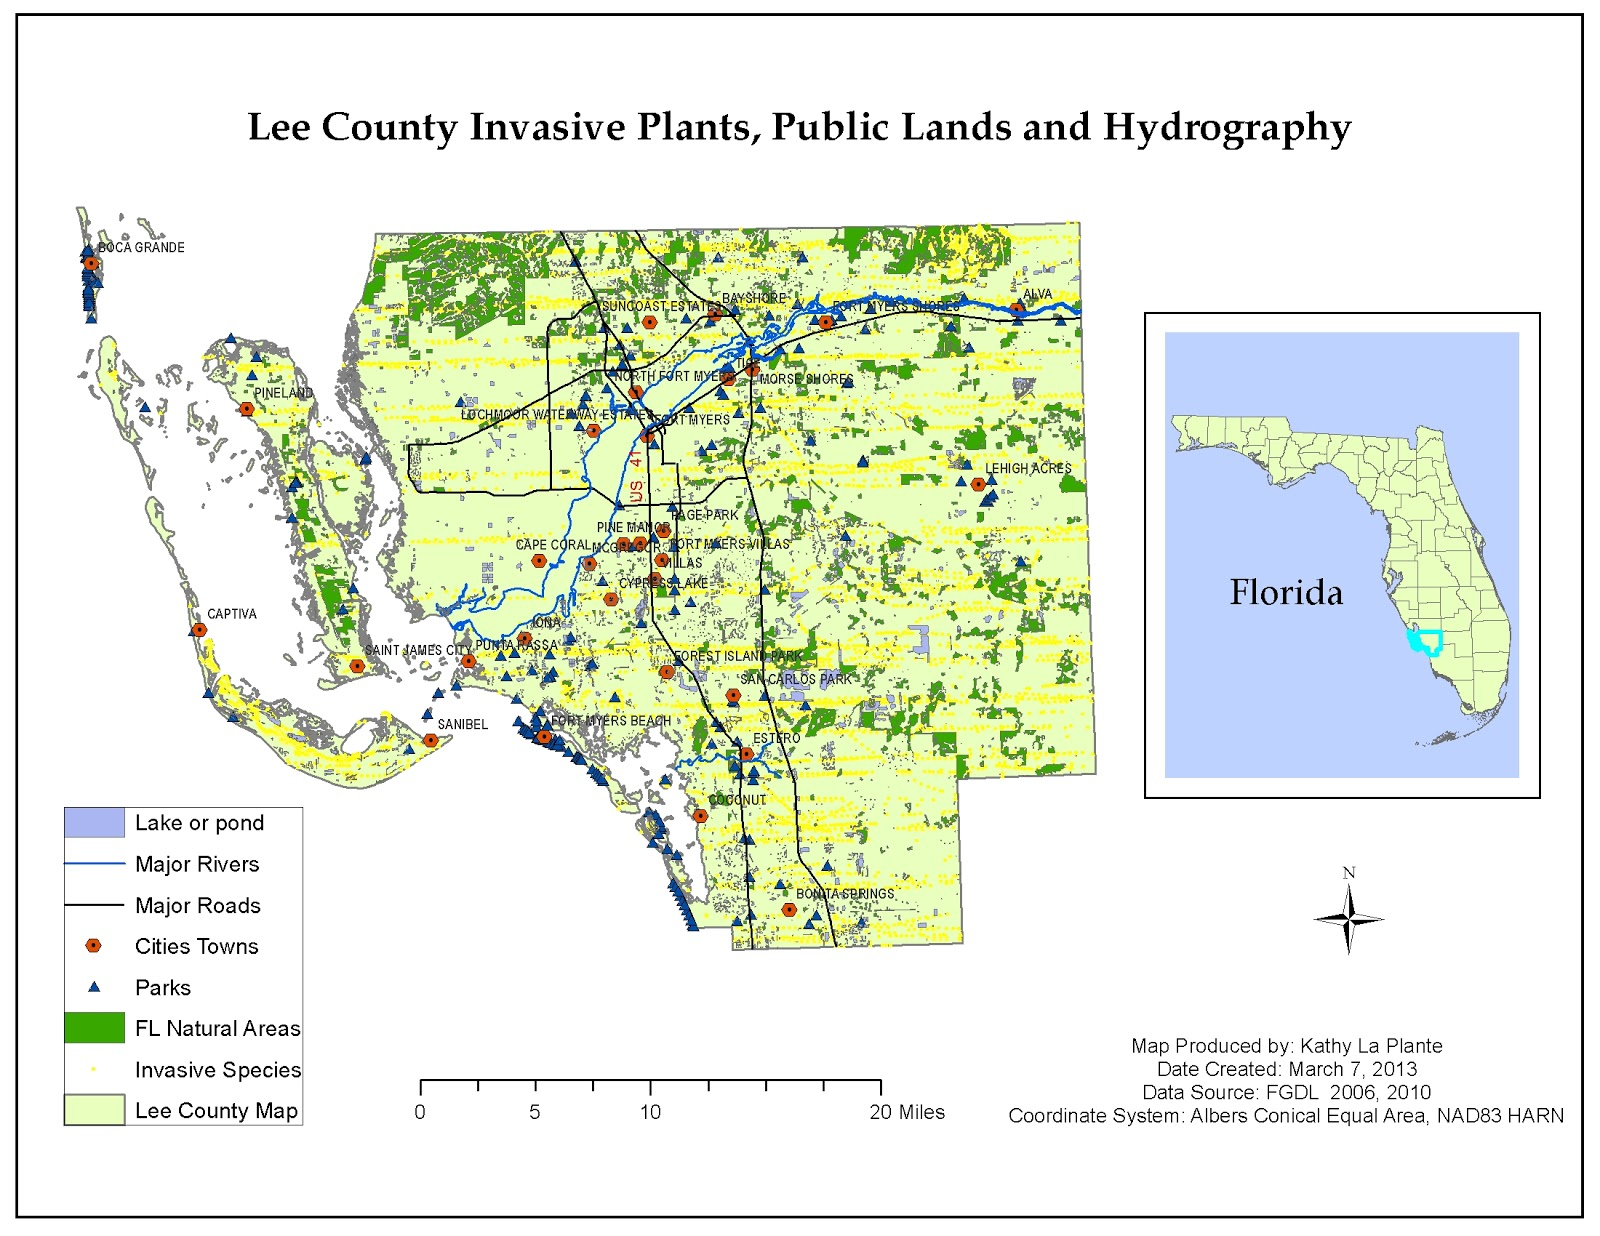 my second and third maps to follow show a digital elevation model dem of lee county and an aerial photograph of a usgs ne quadrangle captiva in lee